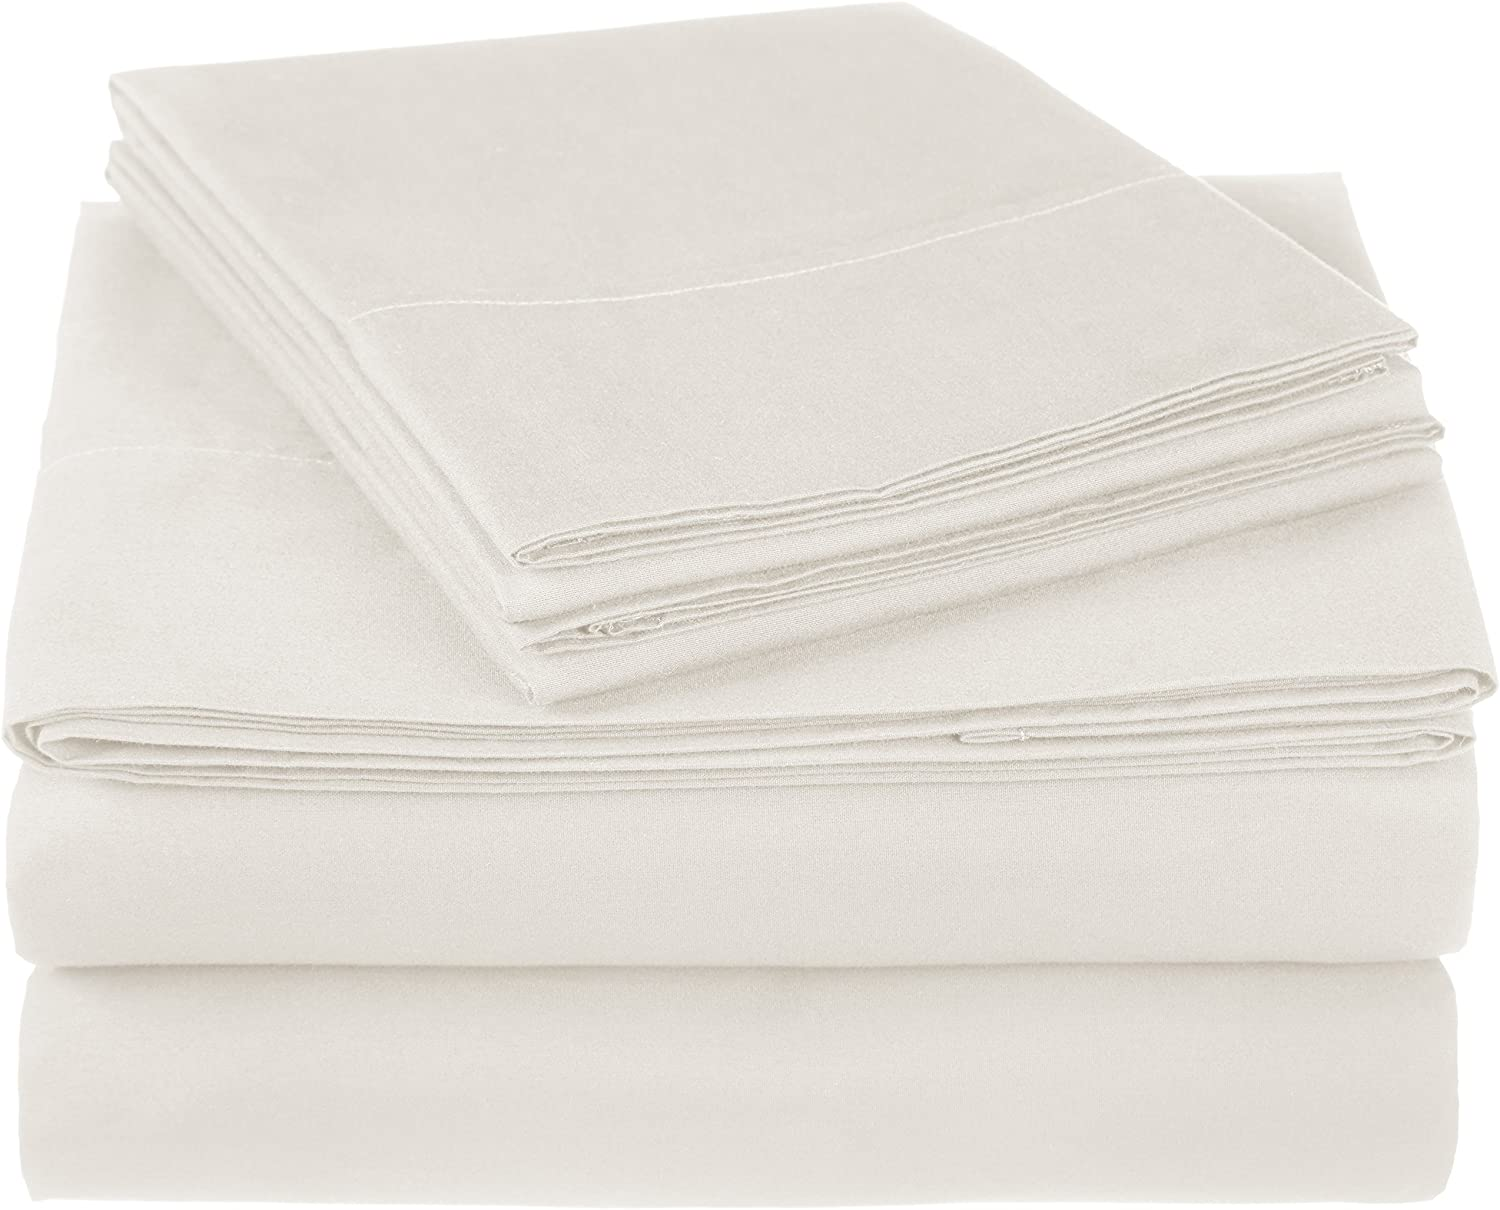 Pinzon 300 Thread Count Ultra Soft Cotton Bed Sheet Set, King, Ivory